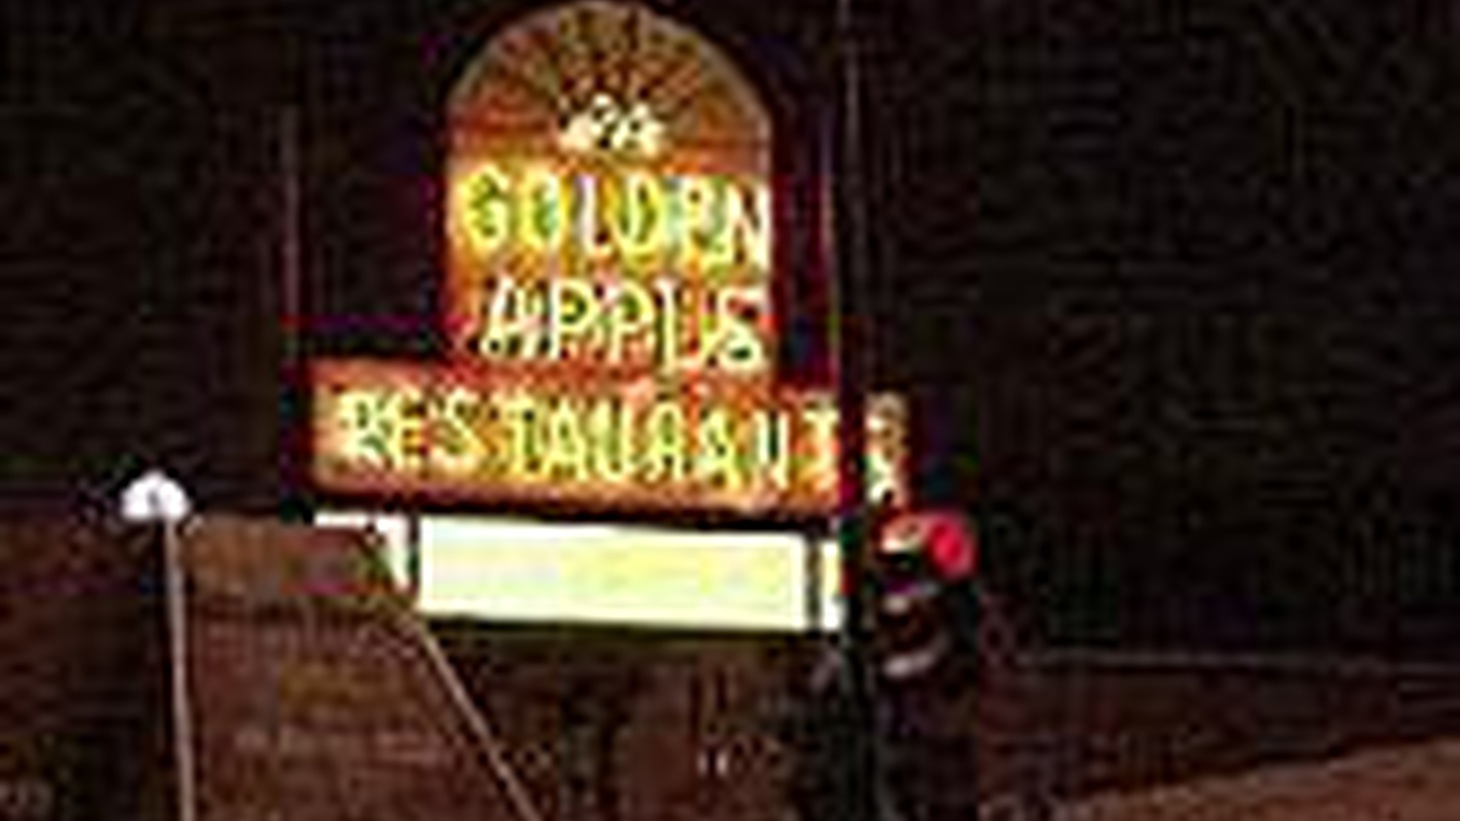 We spend 24 hours--from 5am to 5am the next morning--at the Golden Apple, a diner in Chicago.